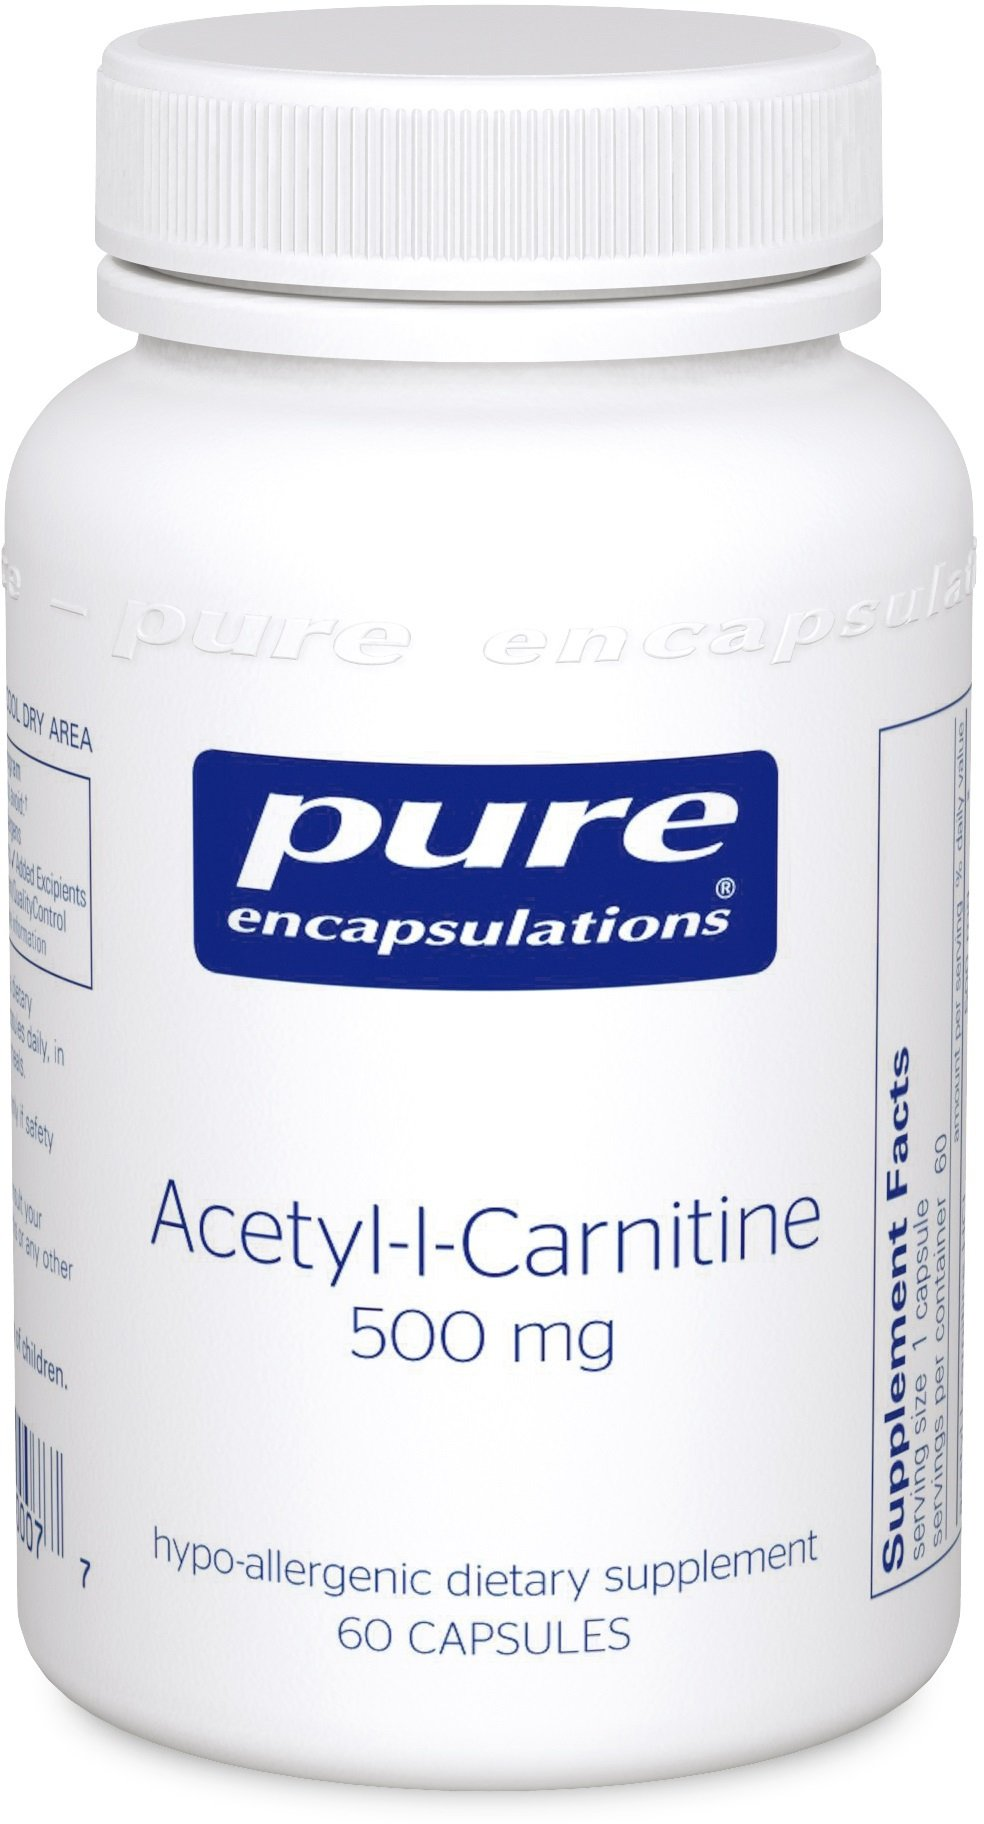 Pure Encapsulations - Acetyl-l-Carnitine 500 mg - Hypoallergenic Supplement to Promote Memory and Attention* - 60 Capsules